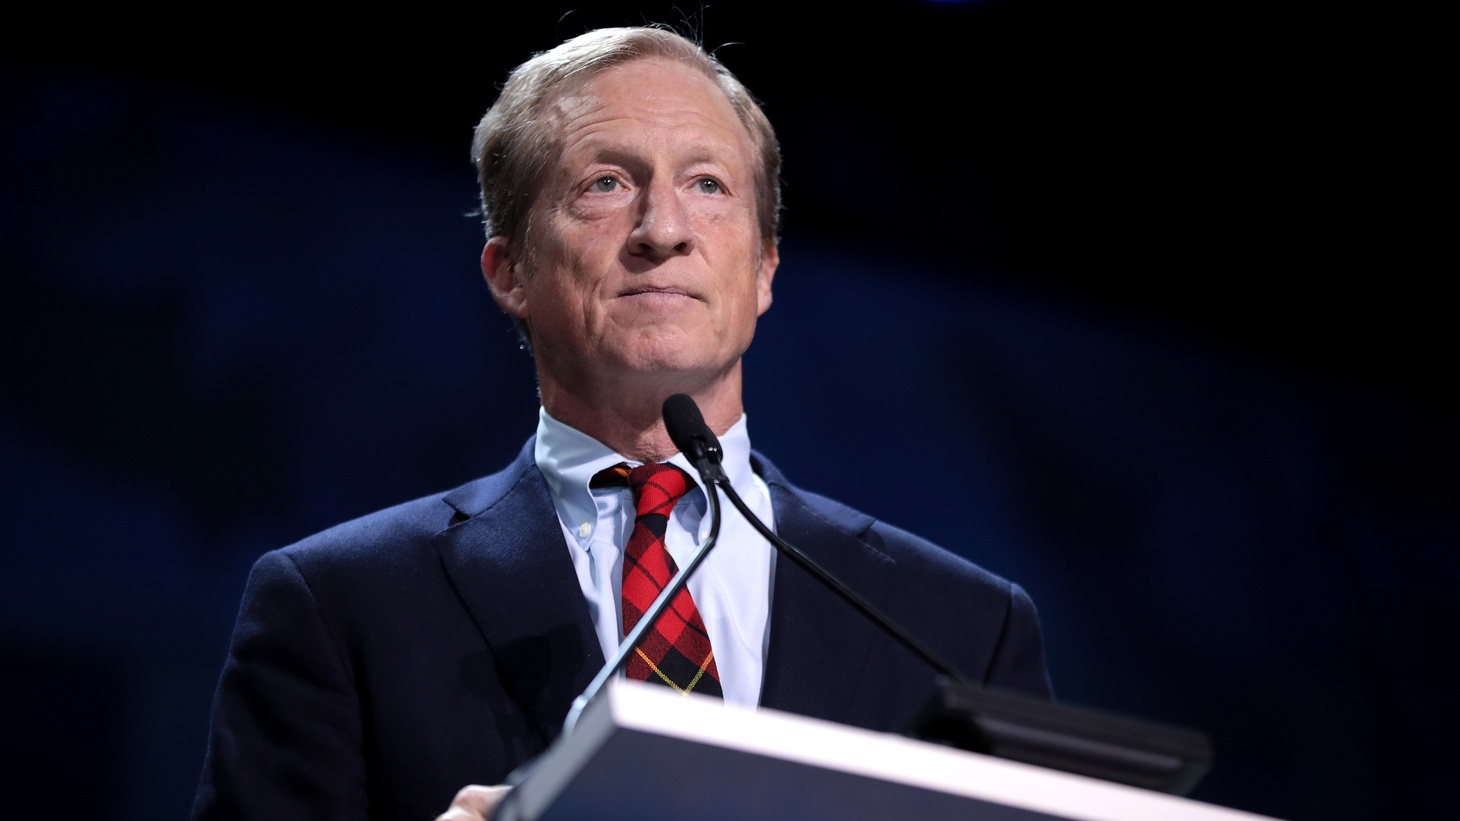 Tom Steyer speaking with attendees at the 2019 California Democratic Party State Convention at the George R. Moscone Convention Center in San Francisco, California, June 1, 2019.